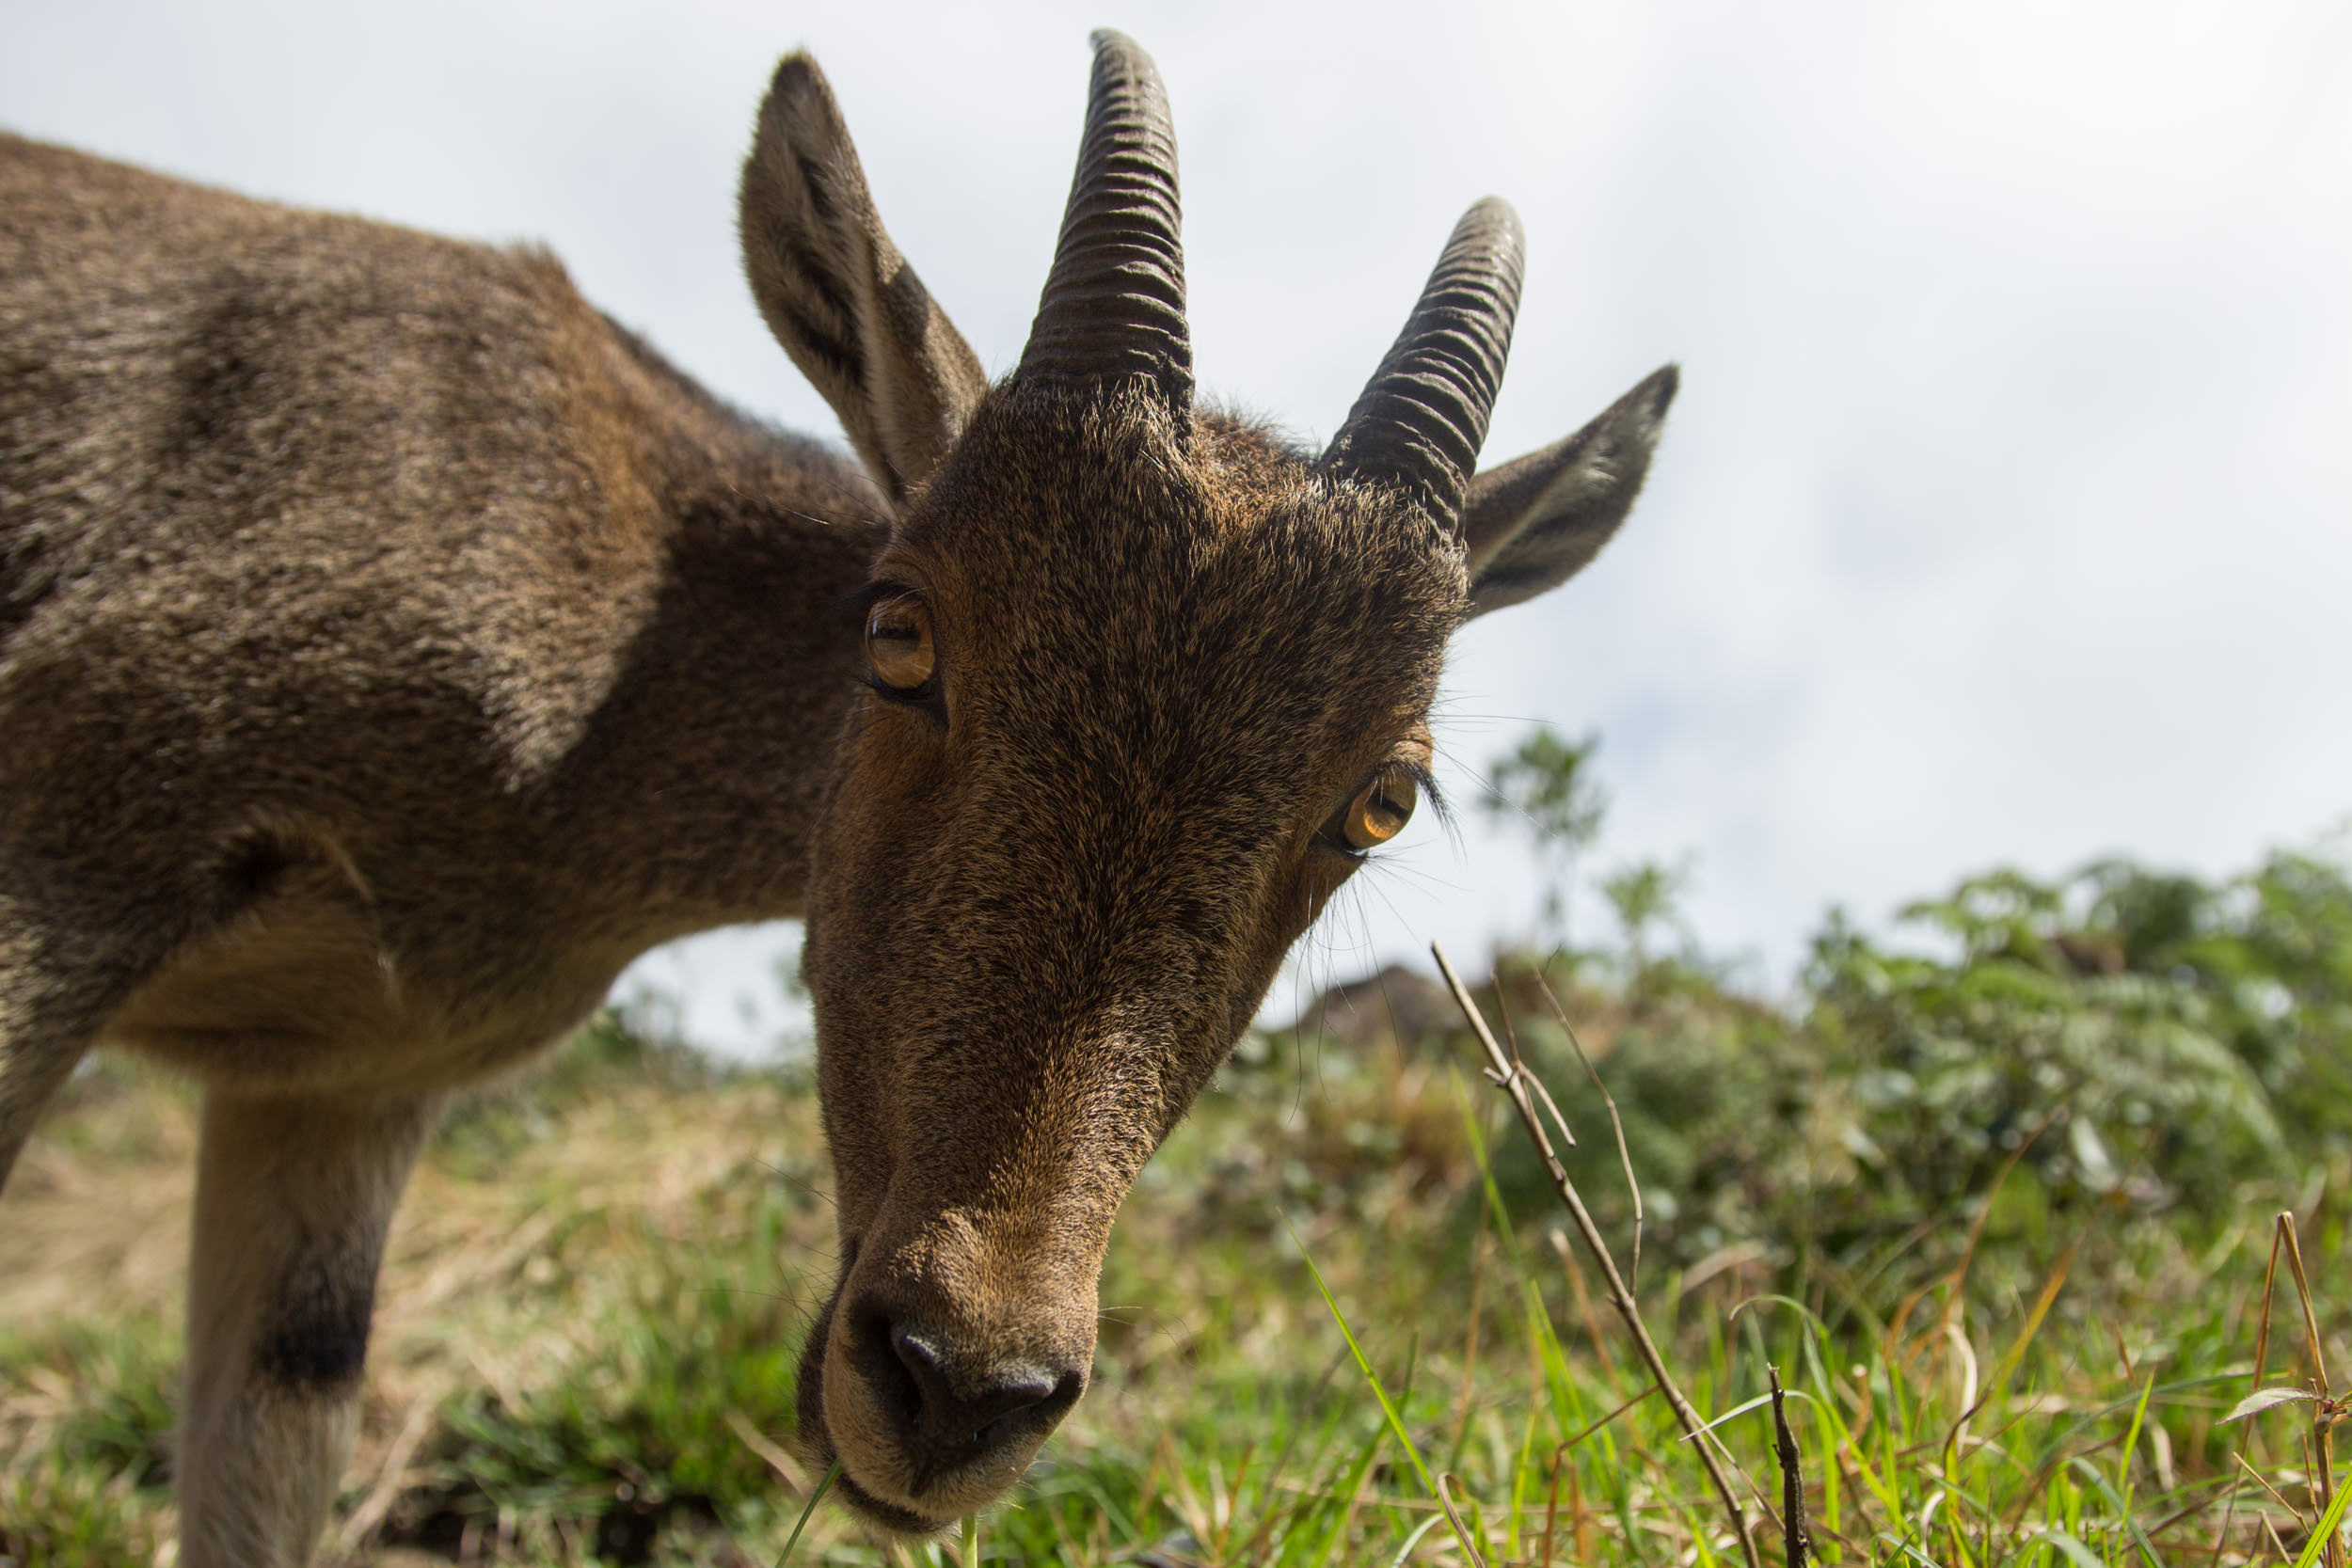 The Niligiri Tahr is just one of them. I've never been so excited to see a goat before now! :)